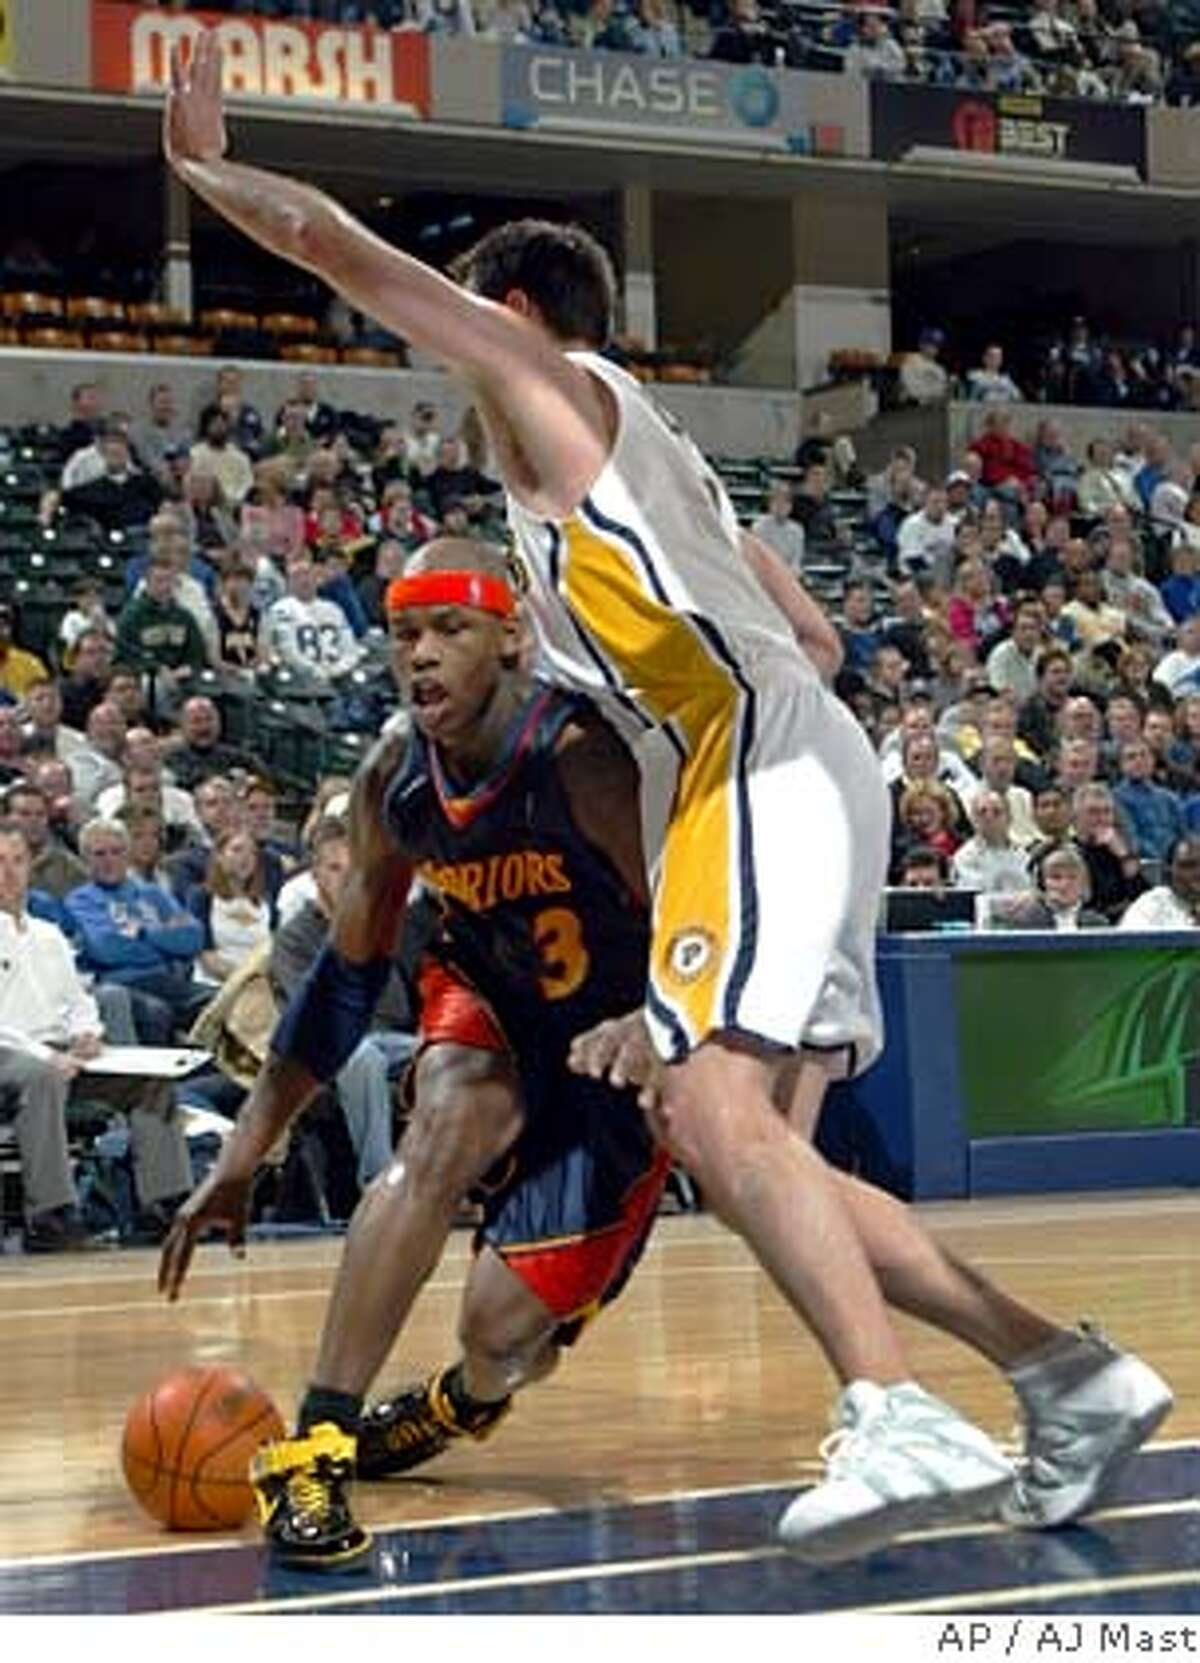 Golden State Warriors Al Harrington, left, drives under the defense of Indiana Pacers' Jeff Foster in the third quarter of an NBA basketball game in Indianapolis, Monday, Feb. 5, 2007. The Warriors won 113-98. (AP Photo/AJ Mast)